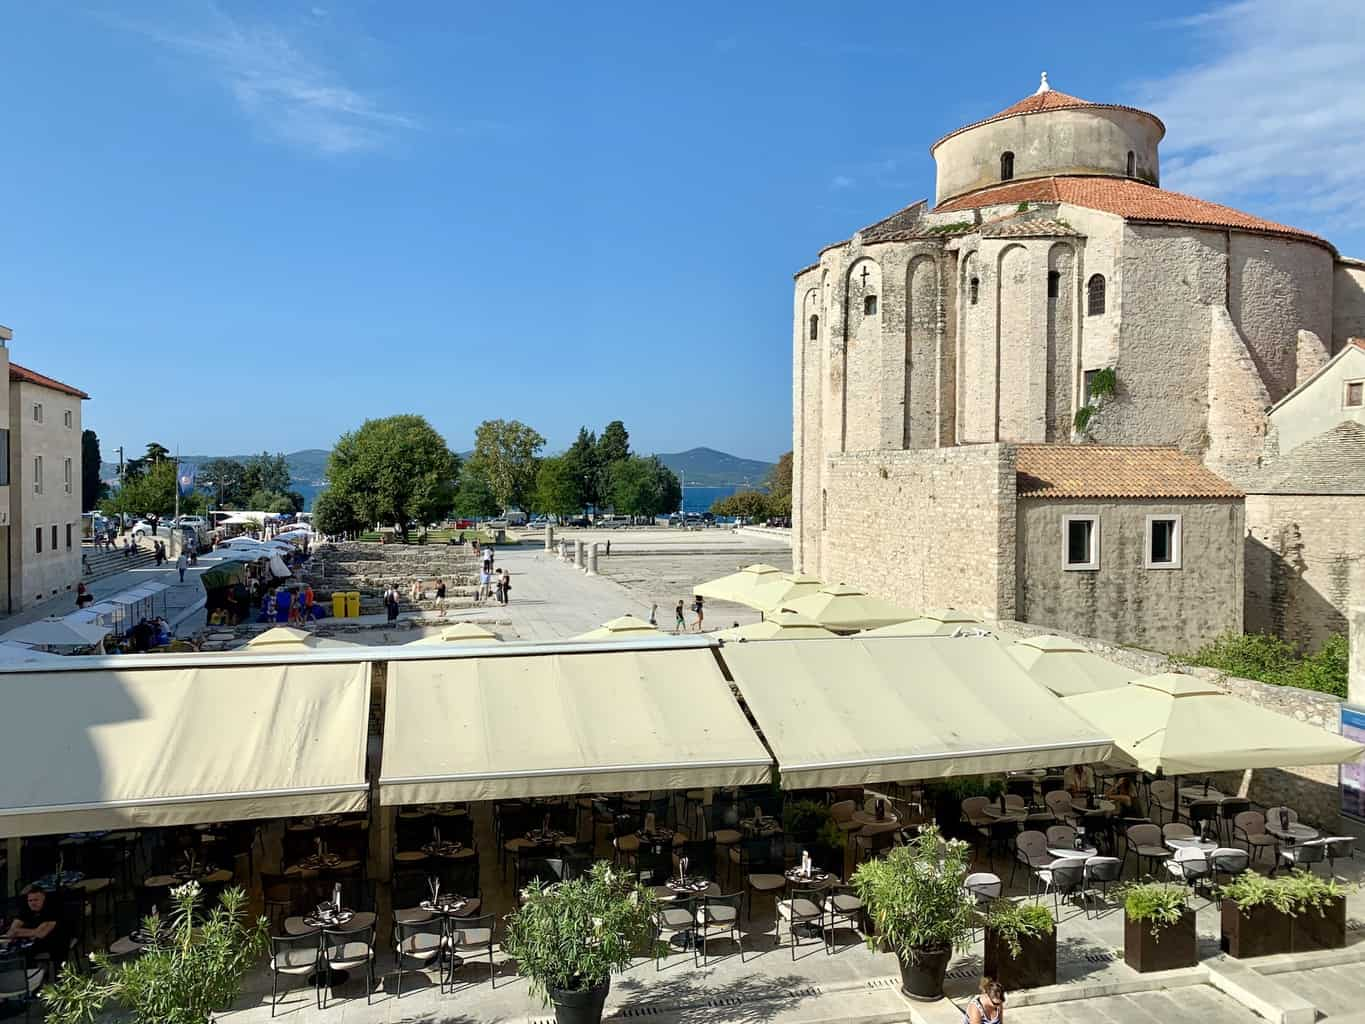 One Day in Zadar Itinerary | 10 Things To Do in Zadar